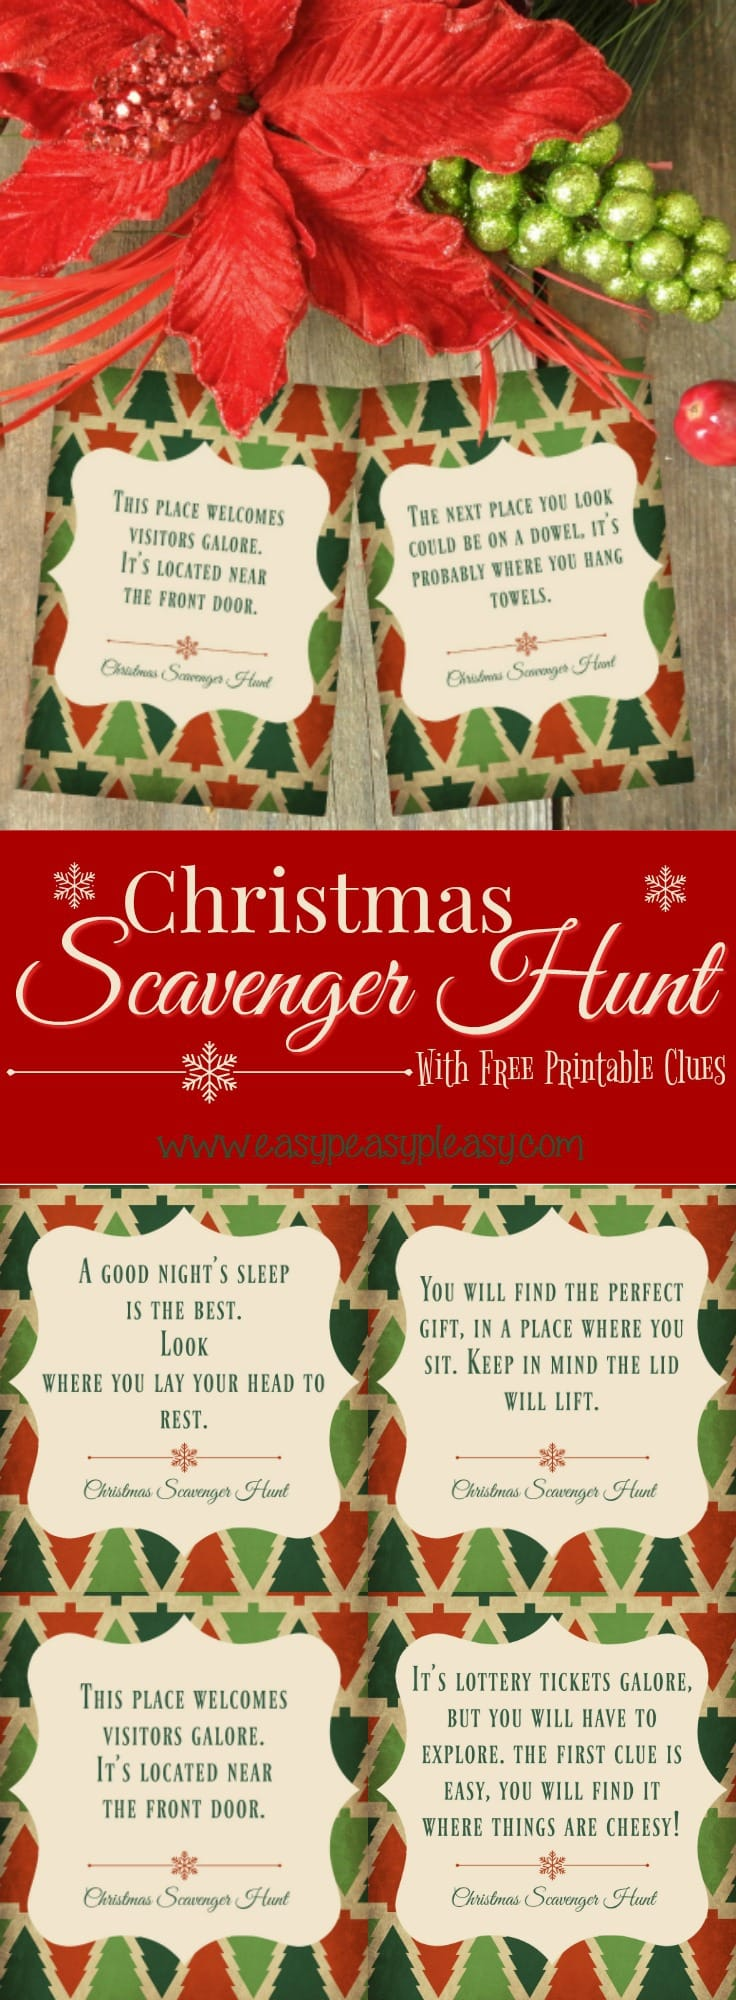 Christmas Scavenger Hunt With Free Printable Clues - Easy Peasy Pleasy